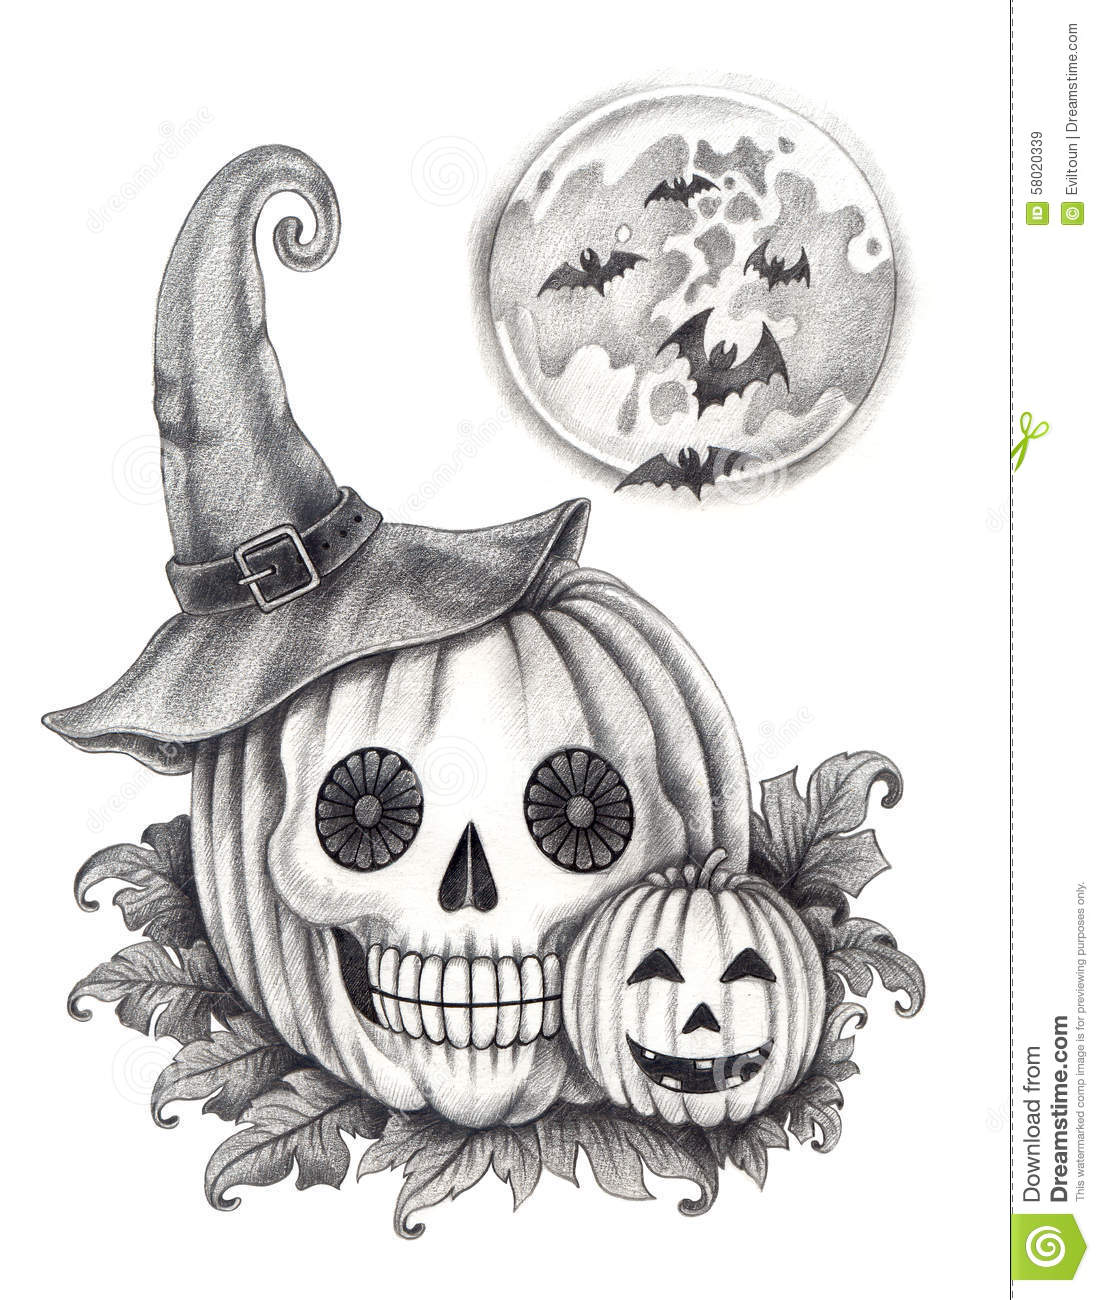 Cartoon Black And White Halloween Witch Cat Waving Royalty Free additionally Scarecrow Shape Template furthermore Chat Peur Halloween Coloriage 14579 as well 2 as well Scary Ghost Drawing. on scary halloween scarecrow drawings